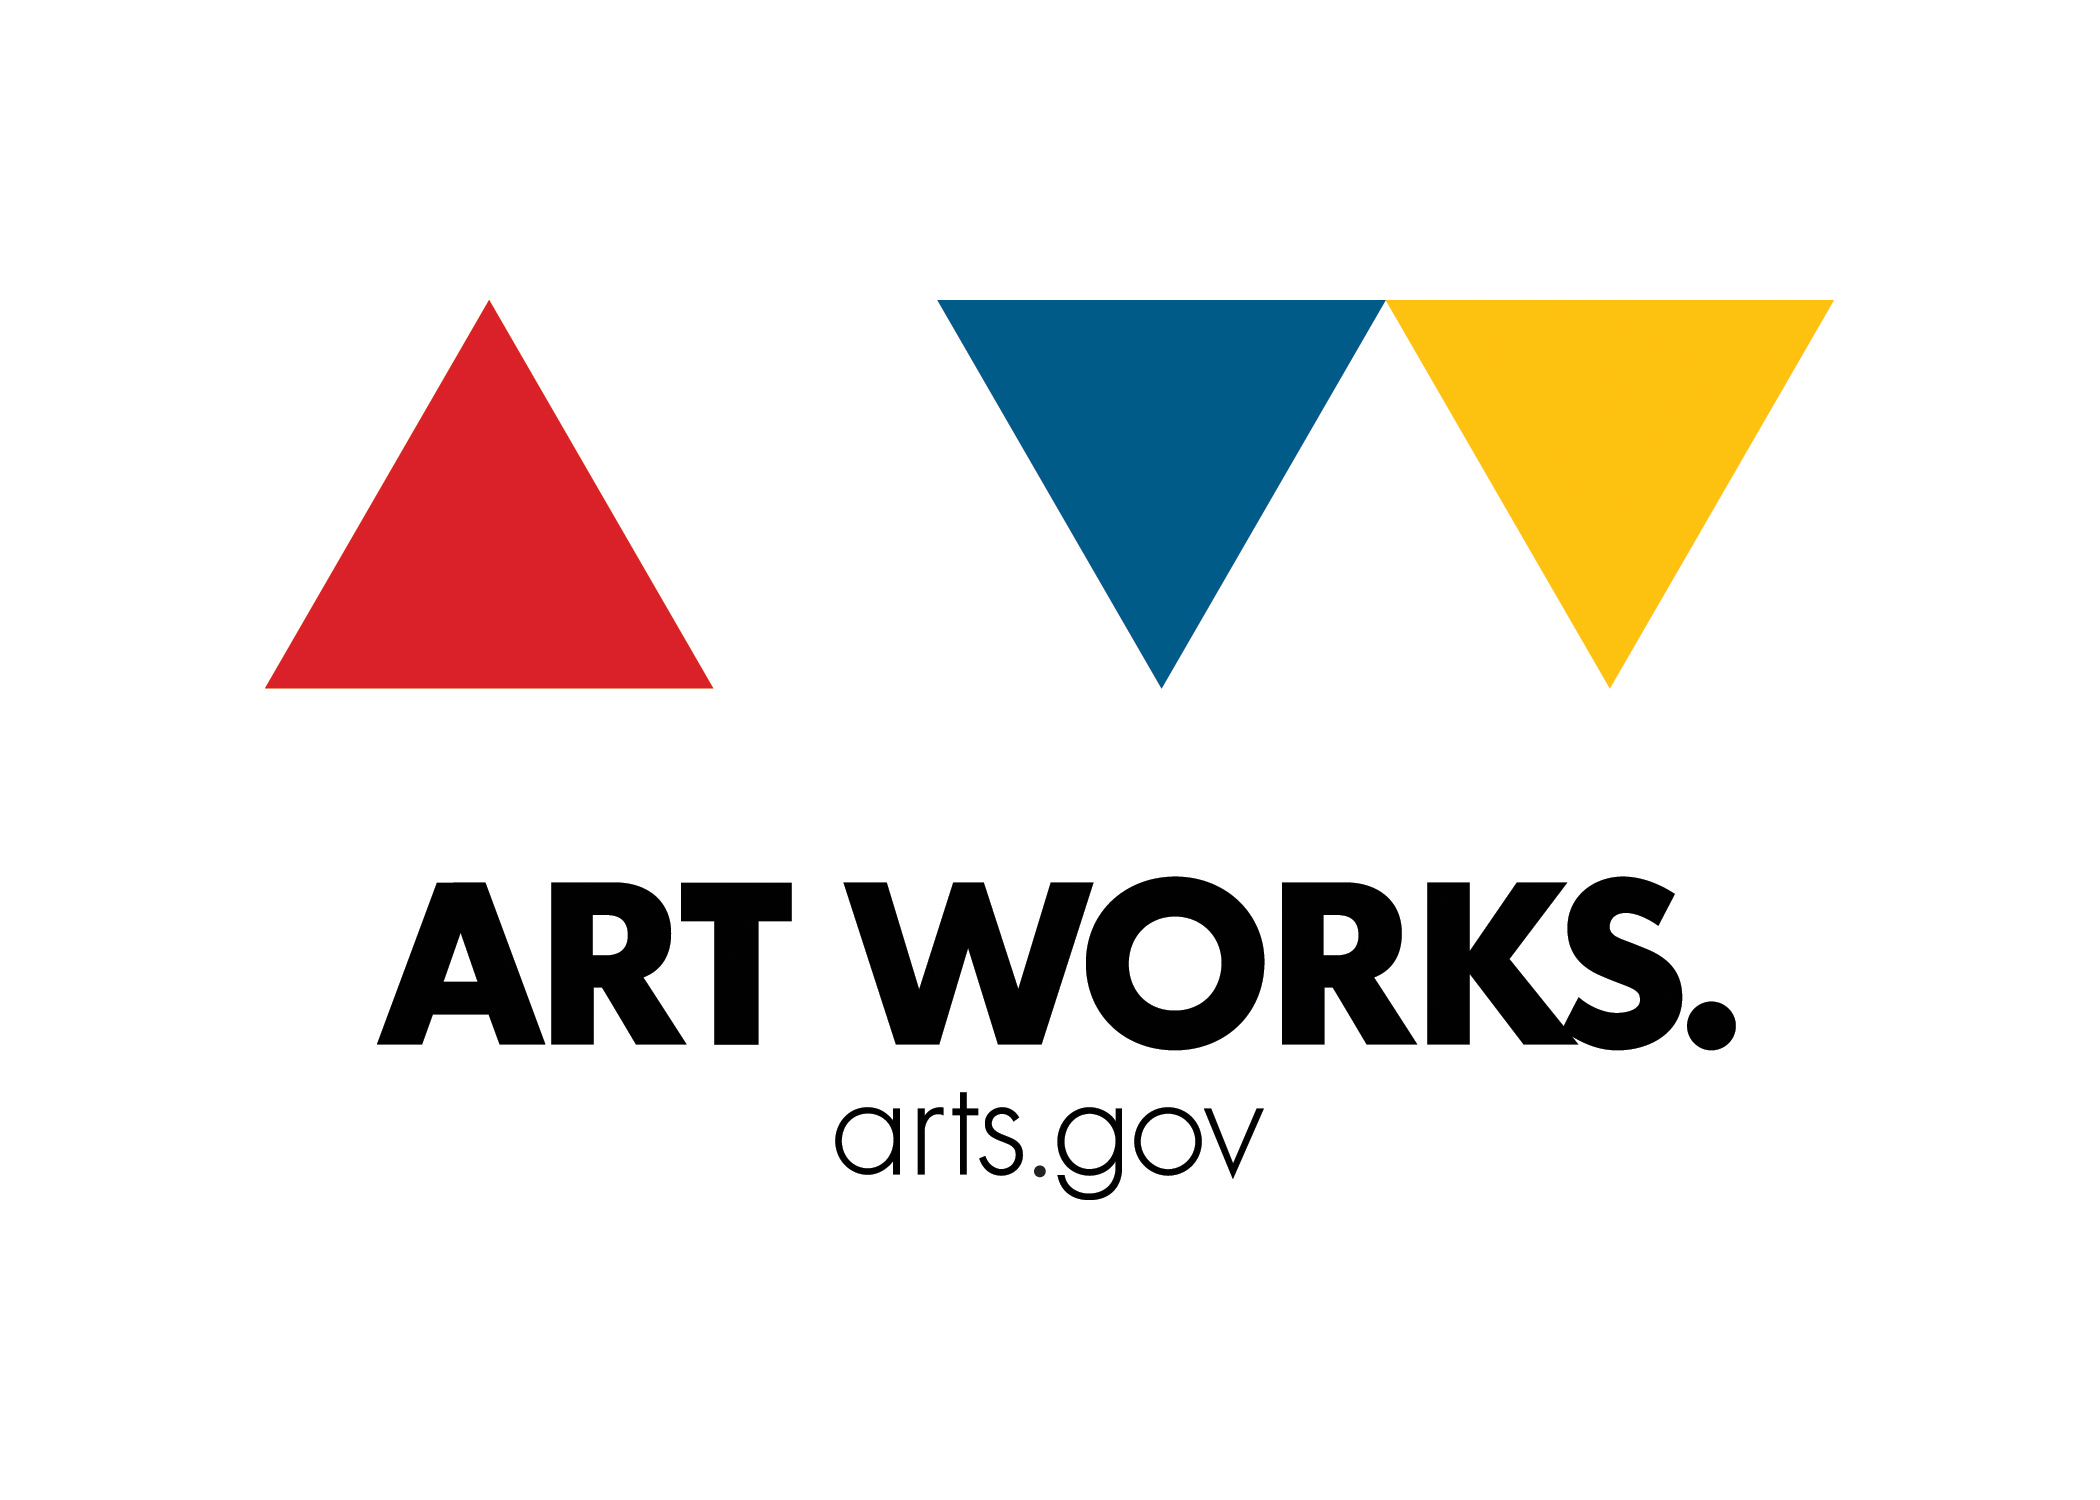 National Endowment For The Arts Wikipedia